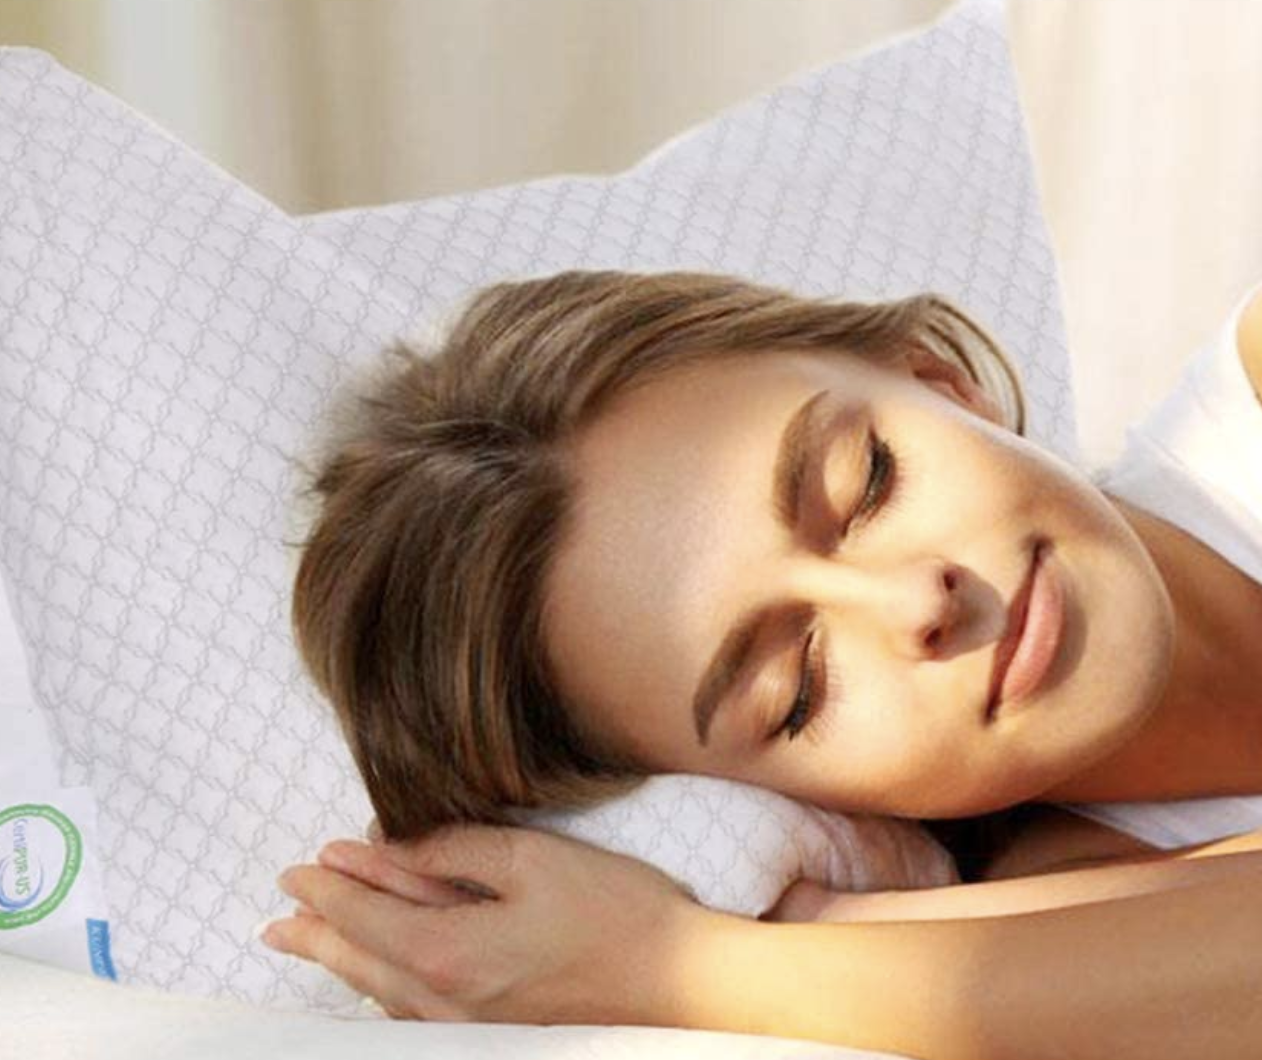 Model sleeping on a white pillow